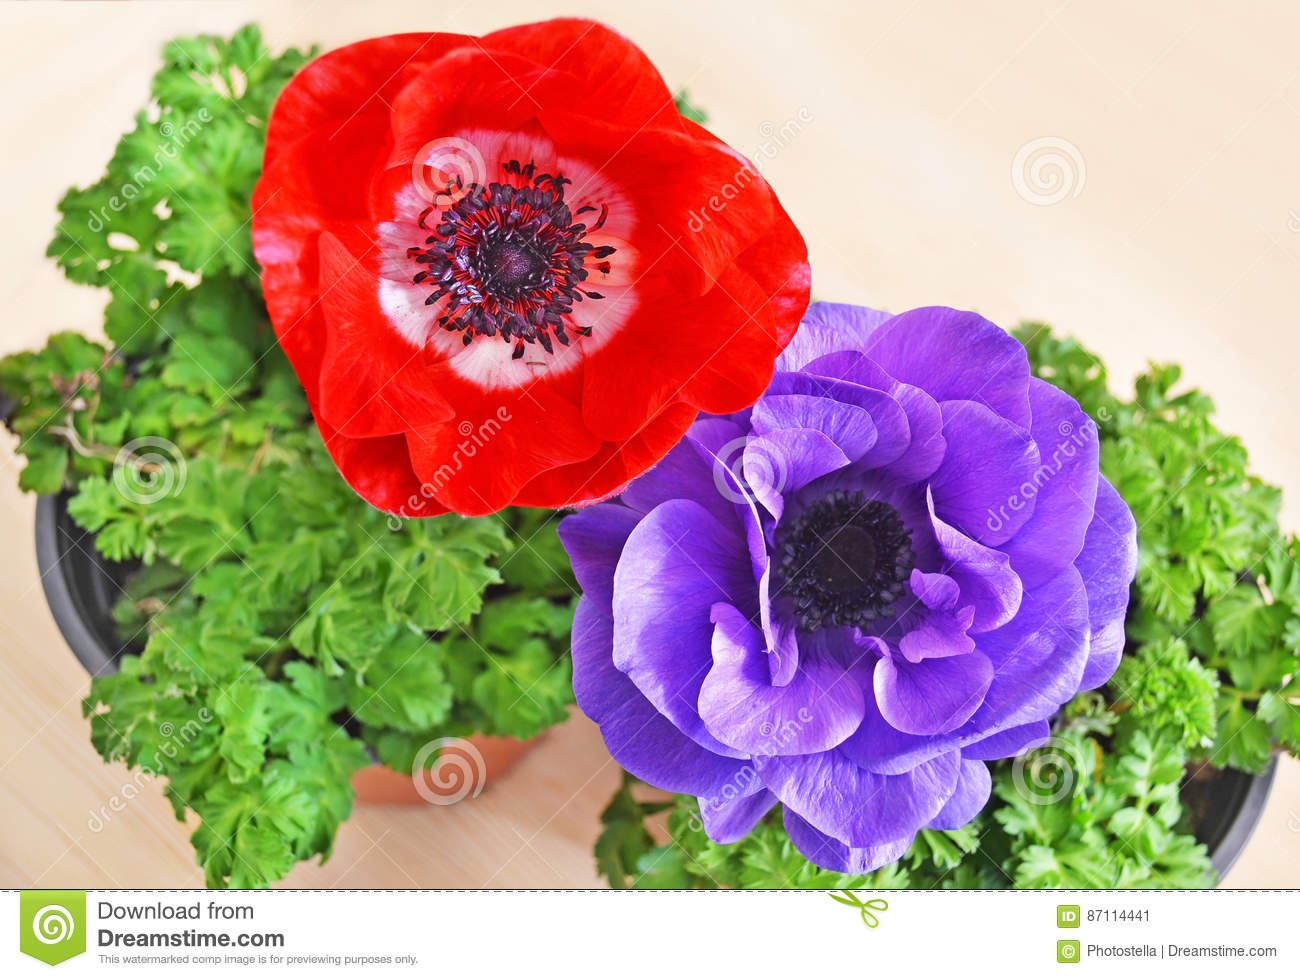 Blooming Red And Purple Anemones In Flower Pots Stock Image - Image ...